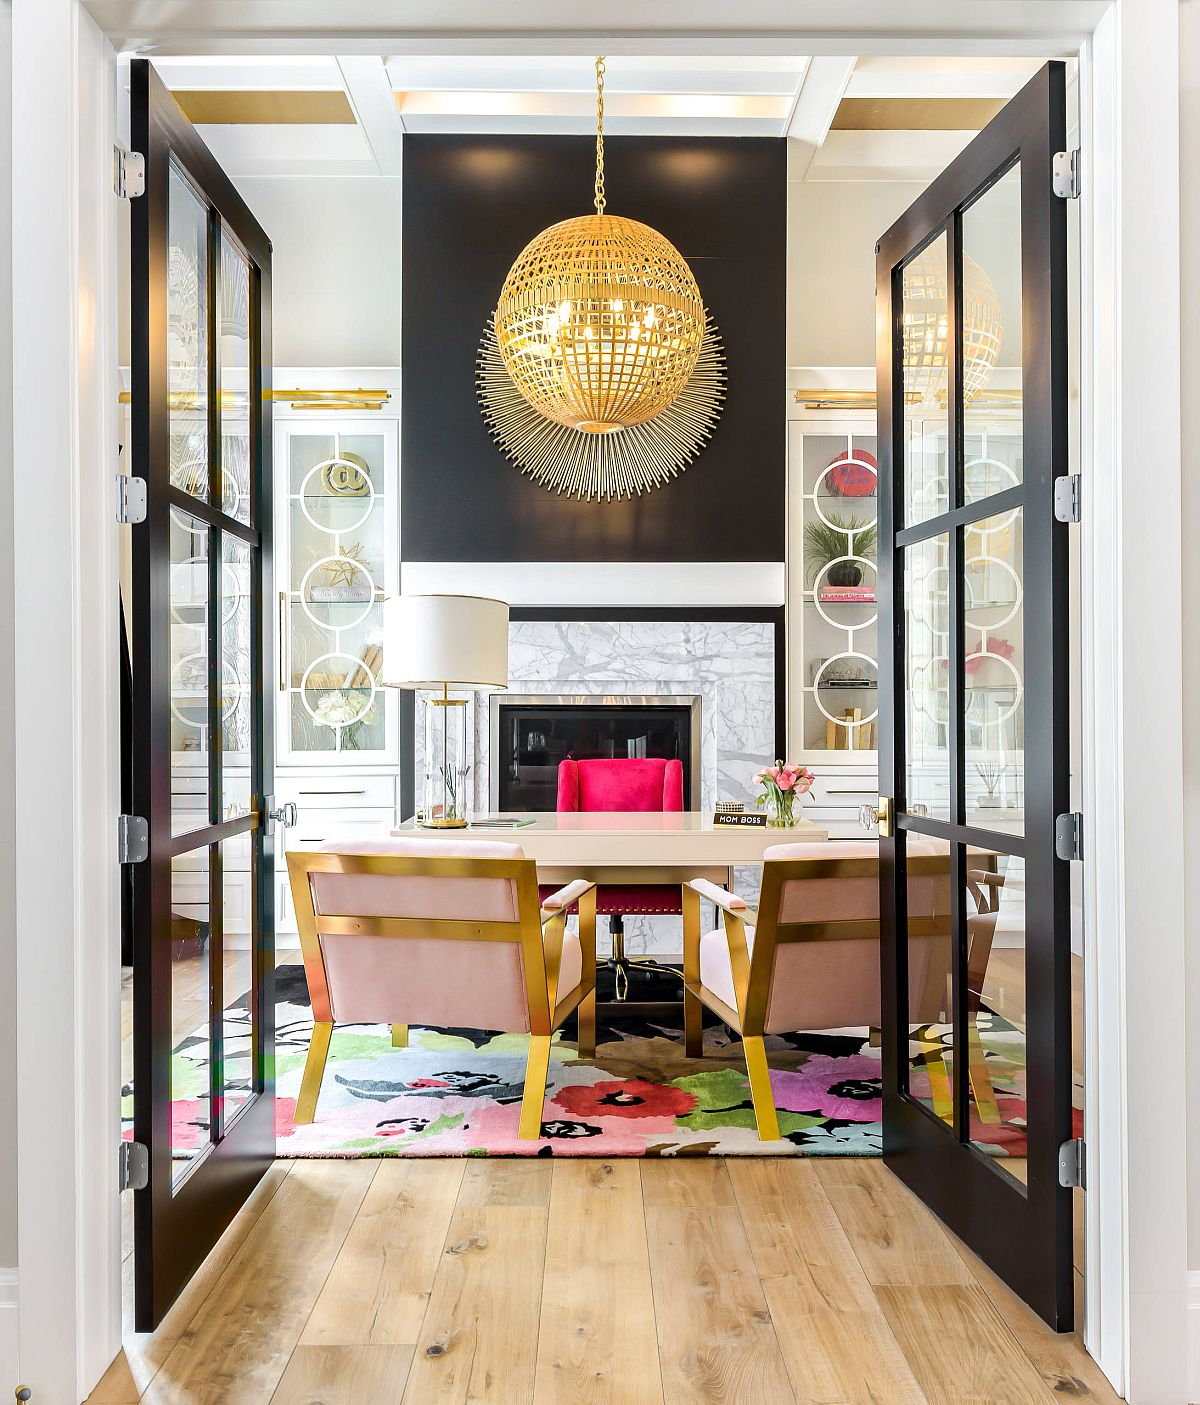 Fabulous-transitional-style-home-office-with-large-framed-glass-doors-and-smart-pops-of-color-inside-13527